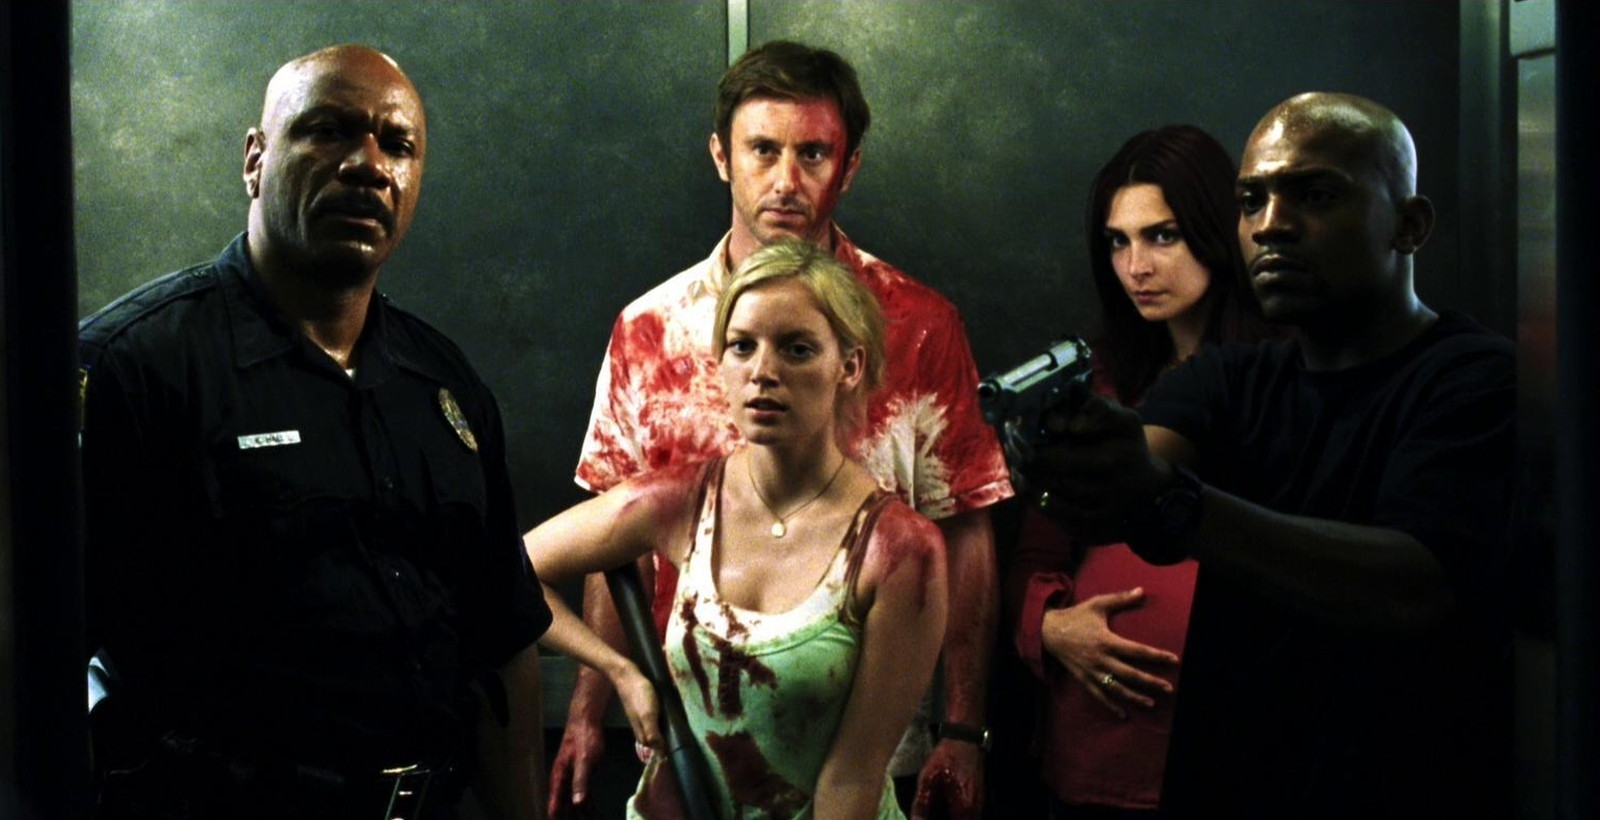 Dawn of the Dead (2004) - Theatrical Cut or Unrated Director's Cut? This or  That Edition